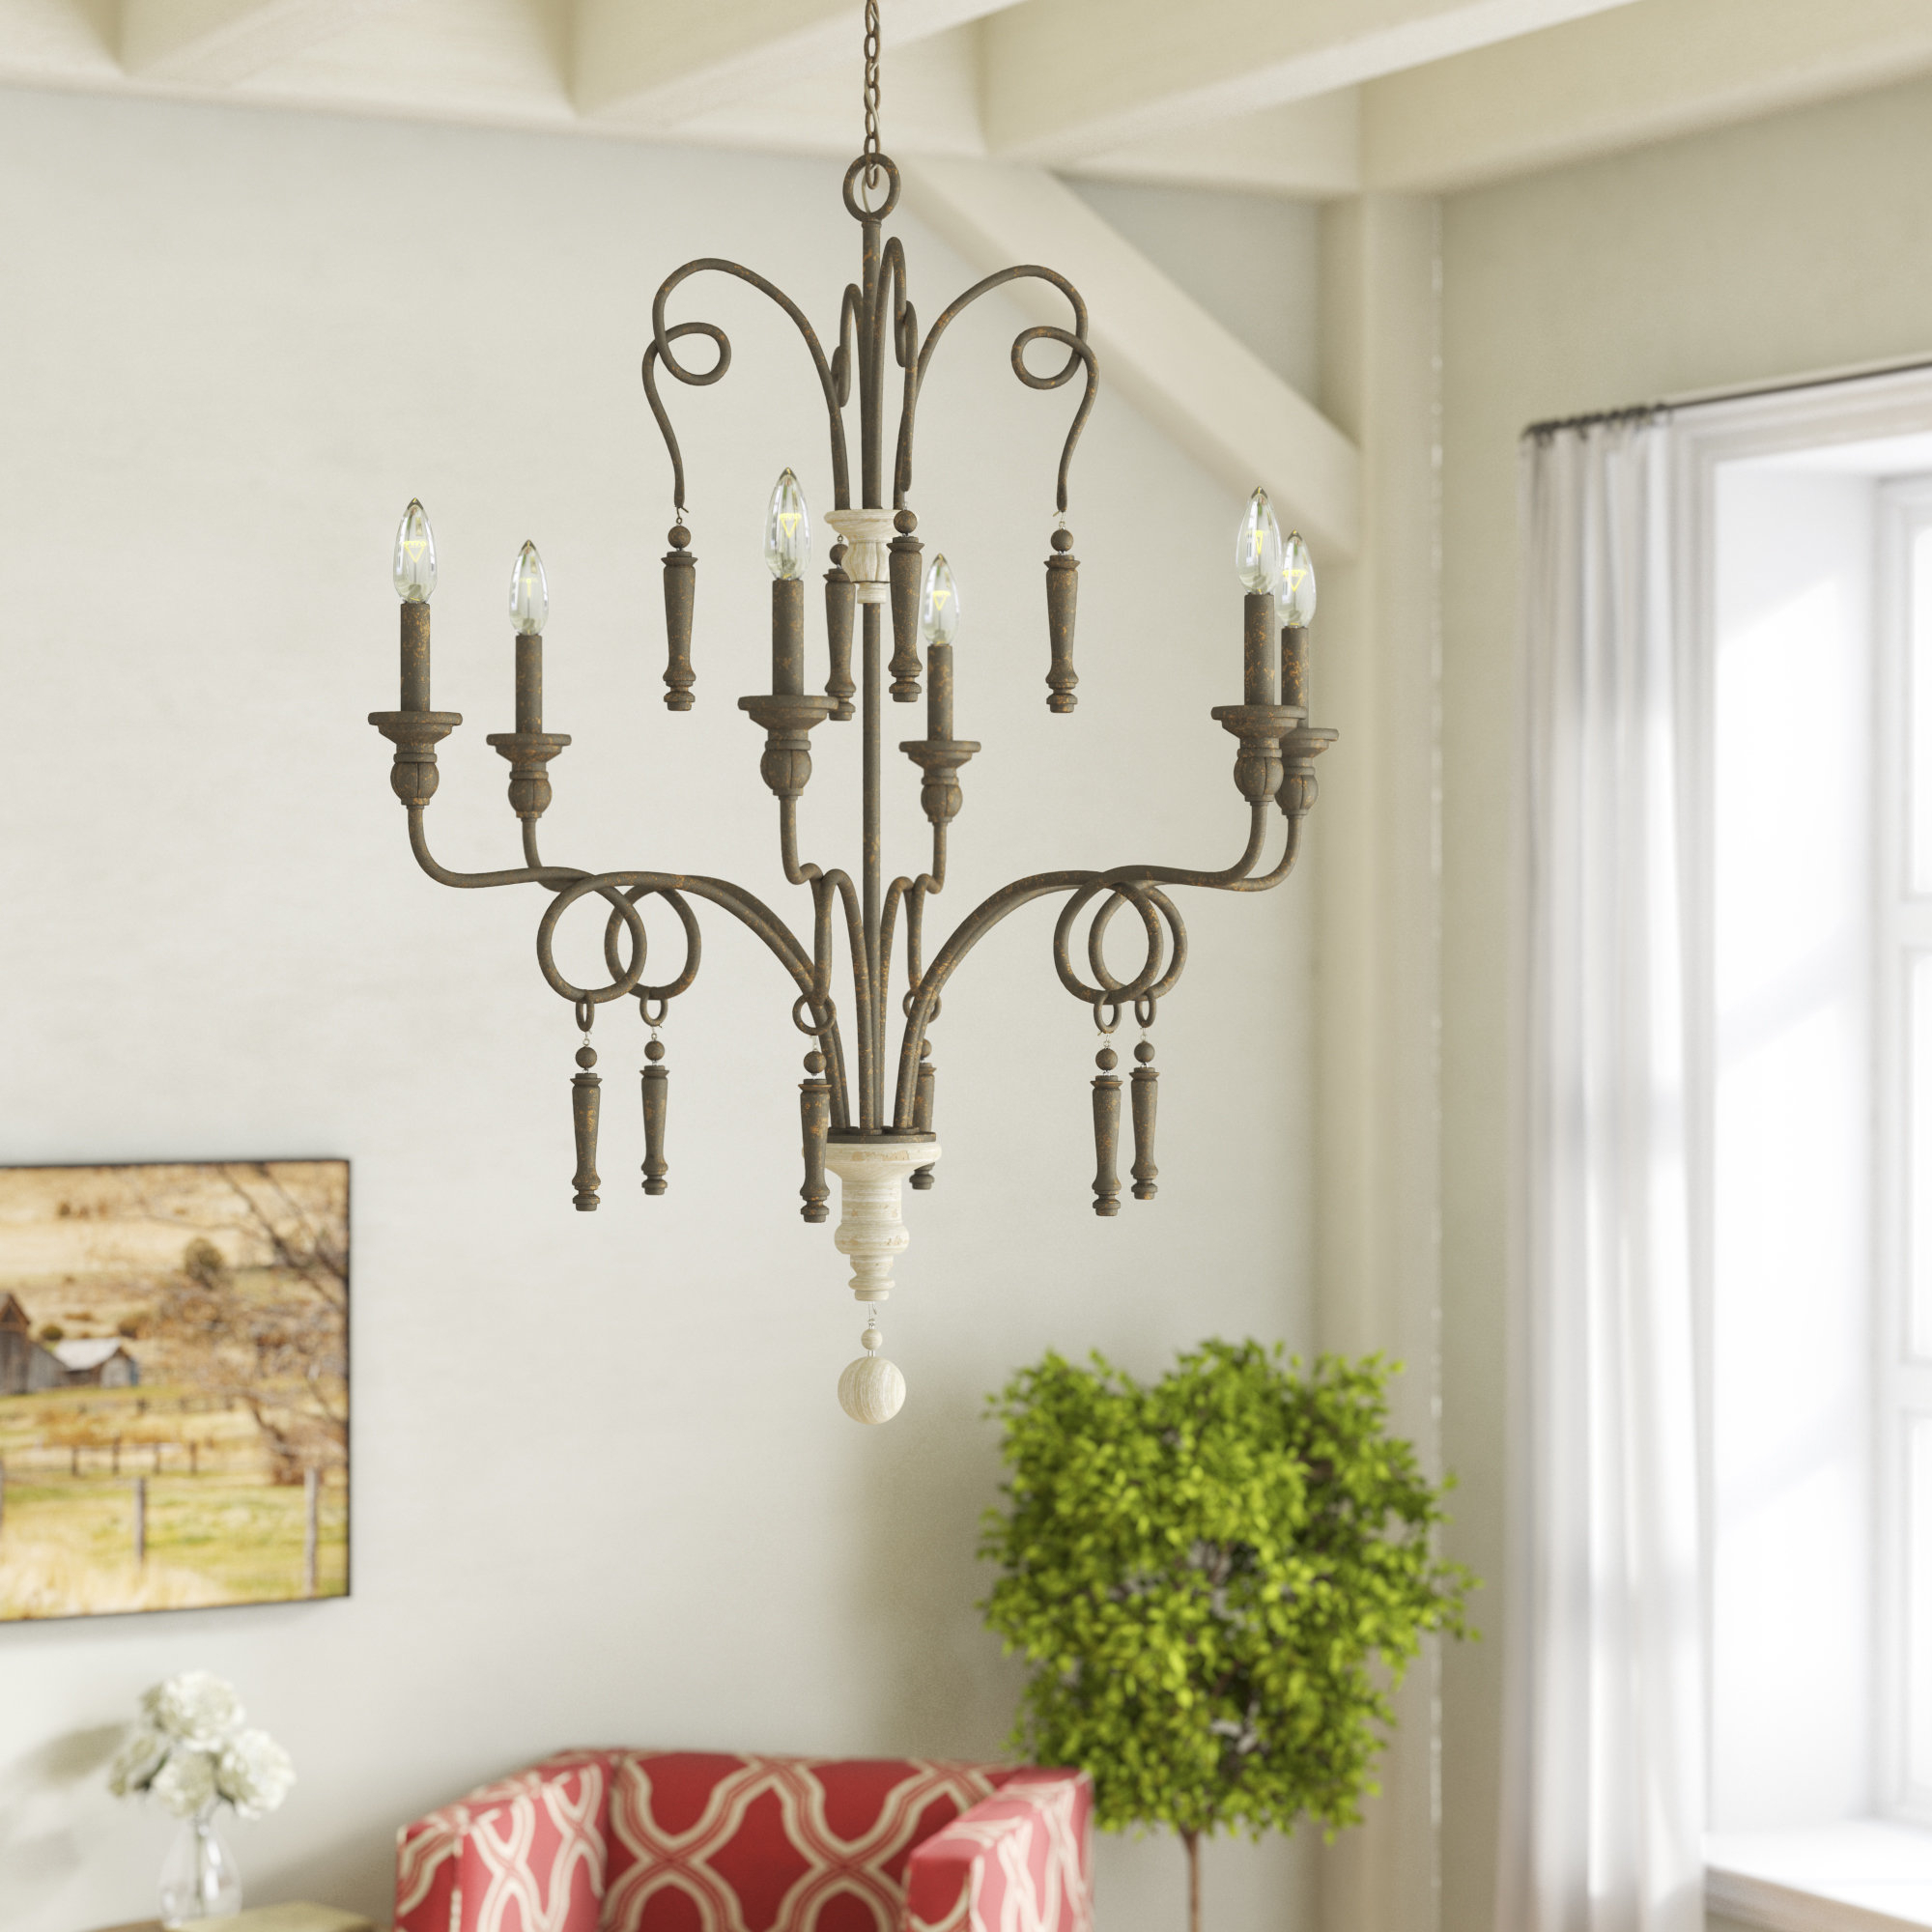 Bouchette Traditional 6-Light Candle Style Chandeliers with regard to Recent Bouchette 6-Light Candle Style Chandelier